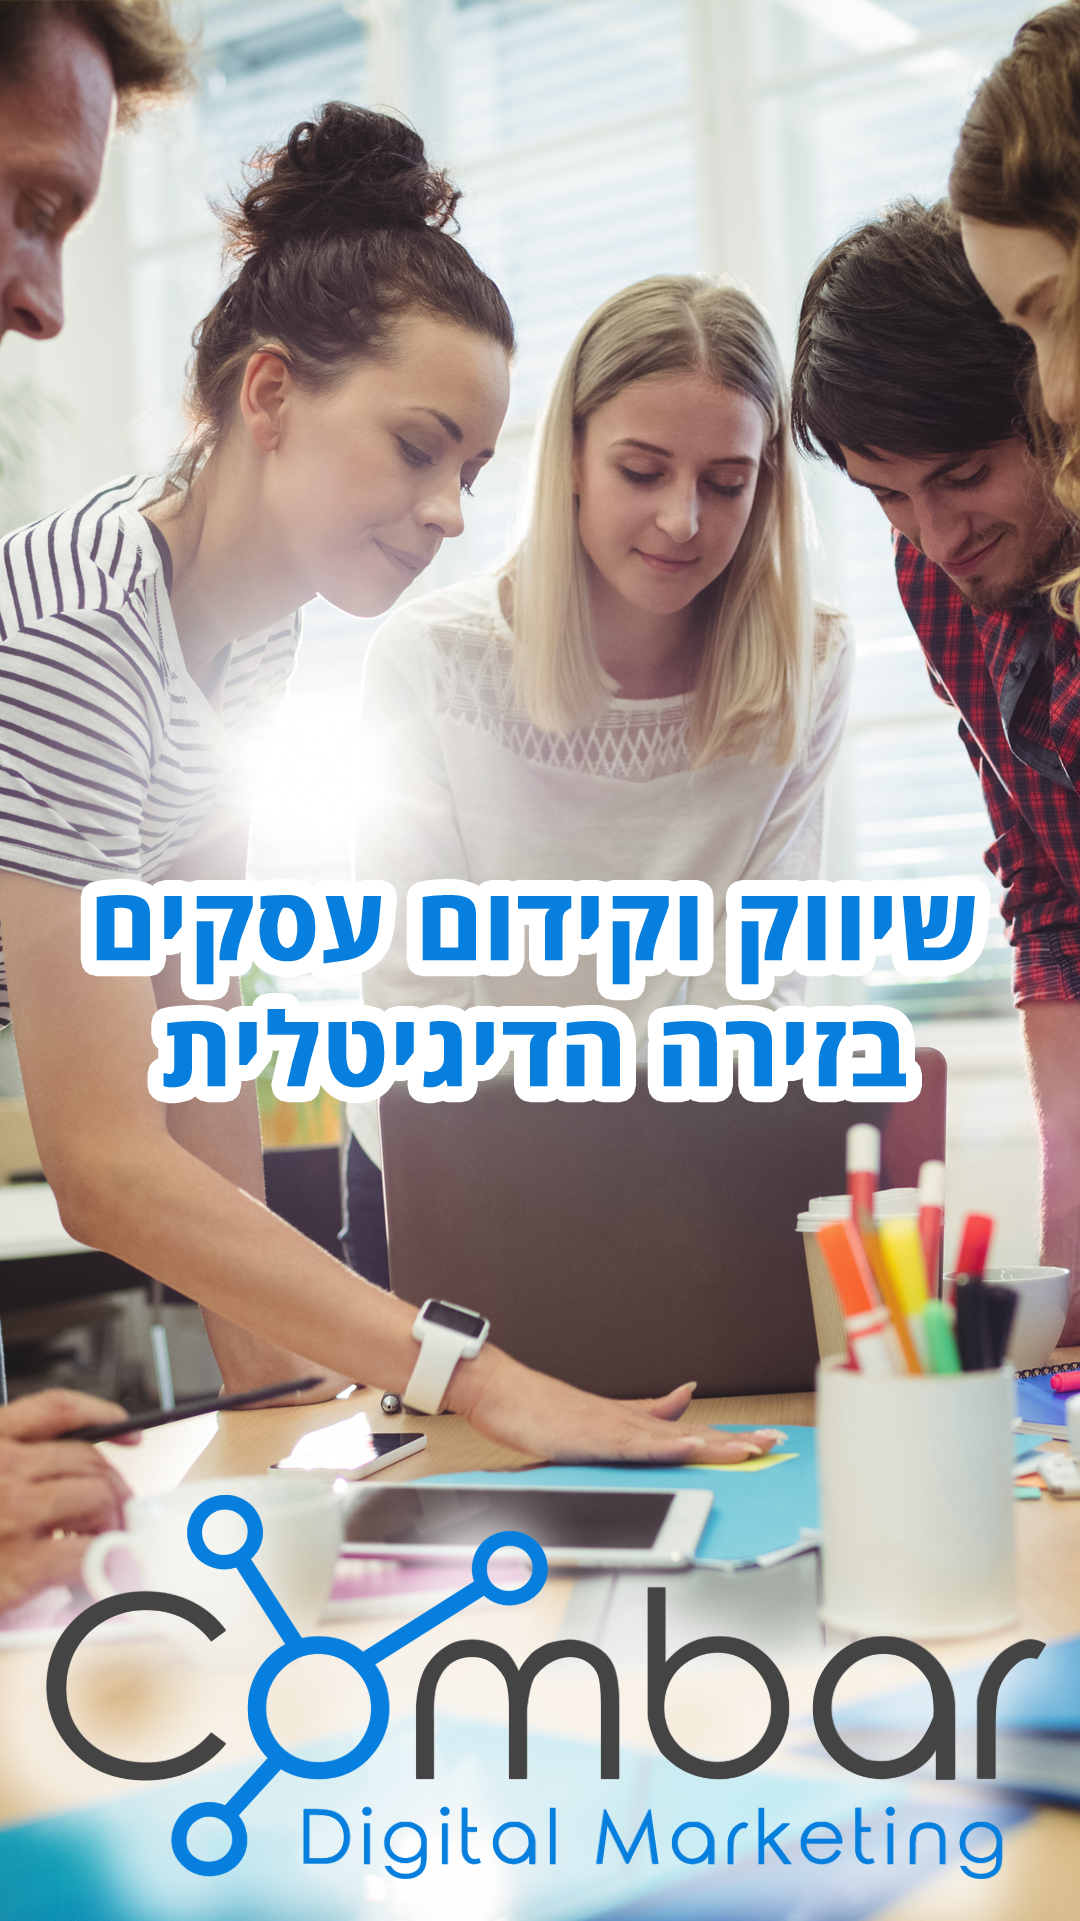 Combar קידום אתרים ושרותי שיווק דיגיטלי לעסקים